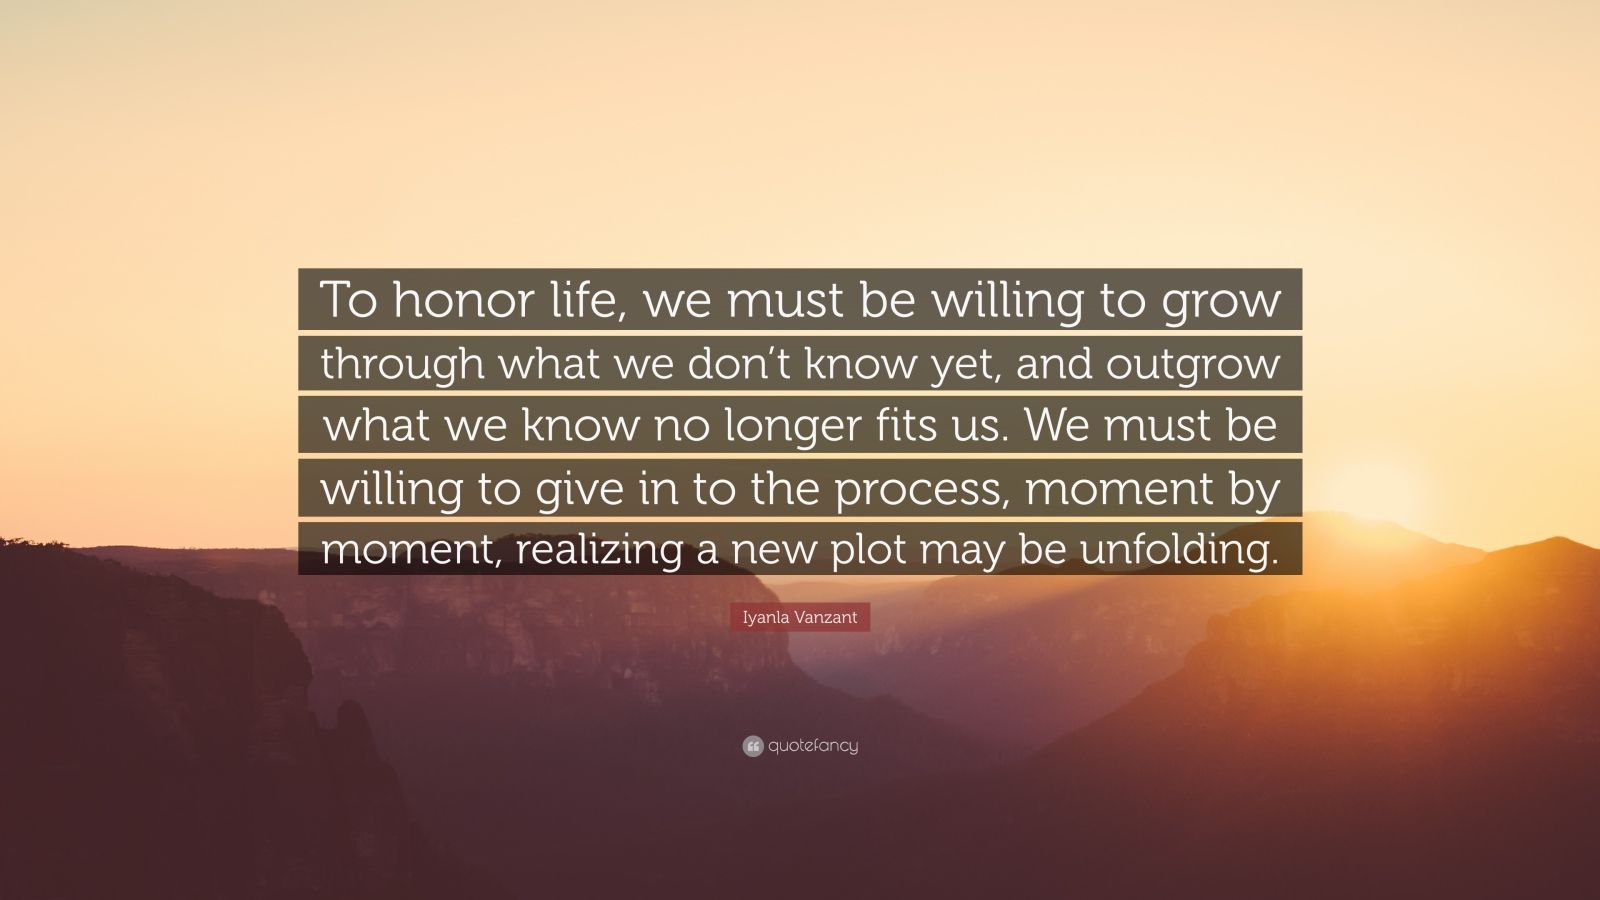 """Iyanla Vanzant Quote: """"To honor life, we must be willing to grow through what we don't know yet, and outgrow what we know no longer fits us. We must be willing to give in to the process, moment by moment, realizing a new plot may be unfolding."""""""